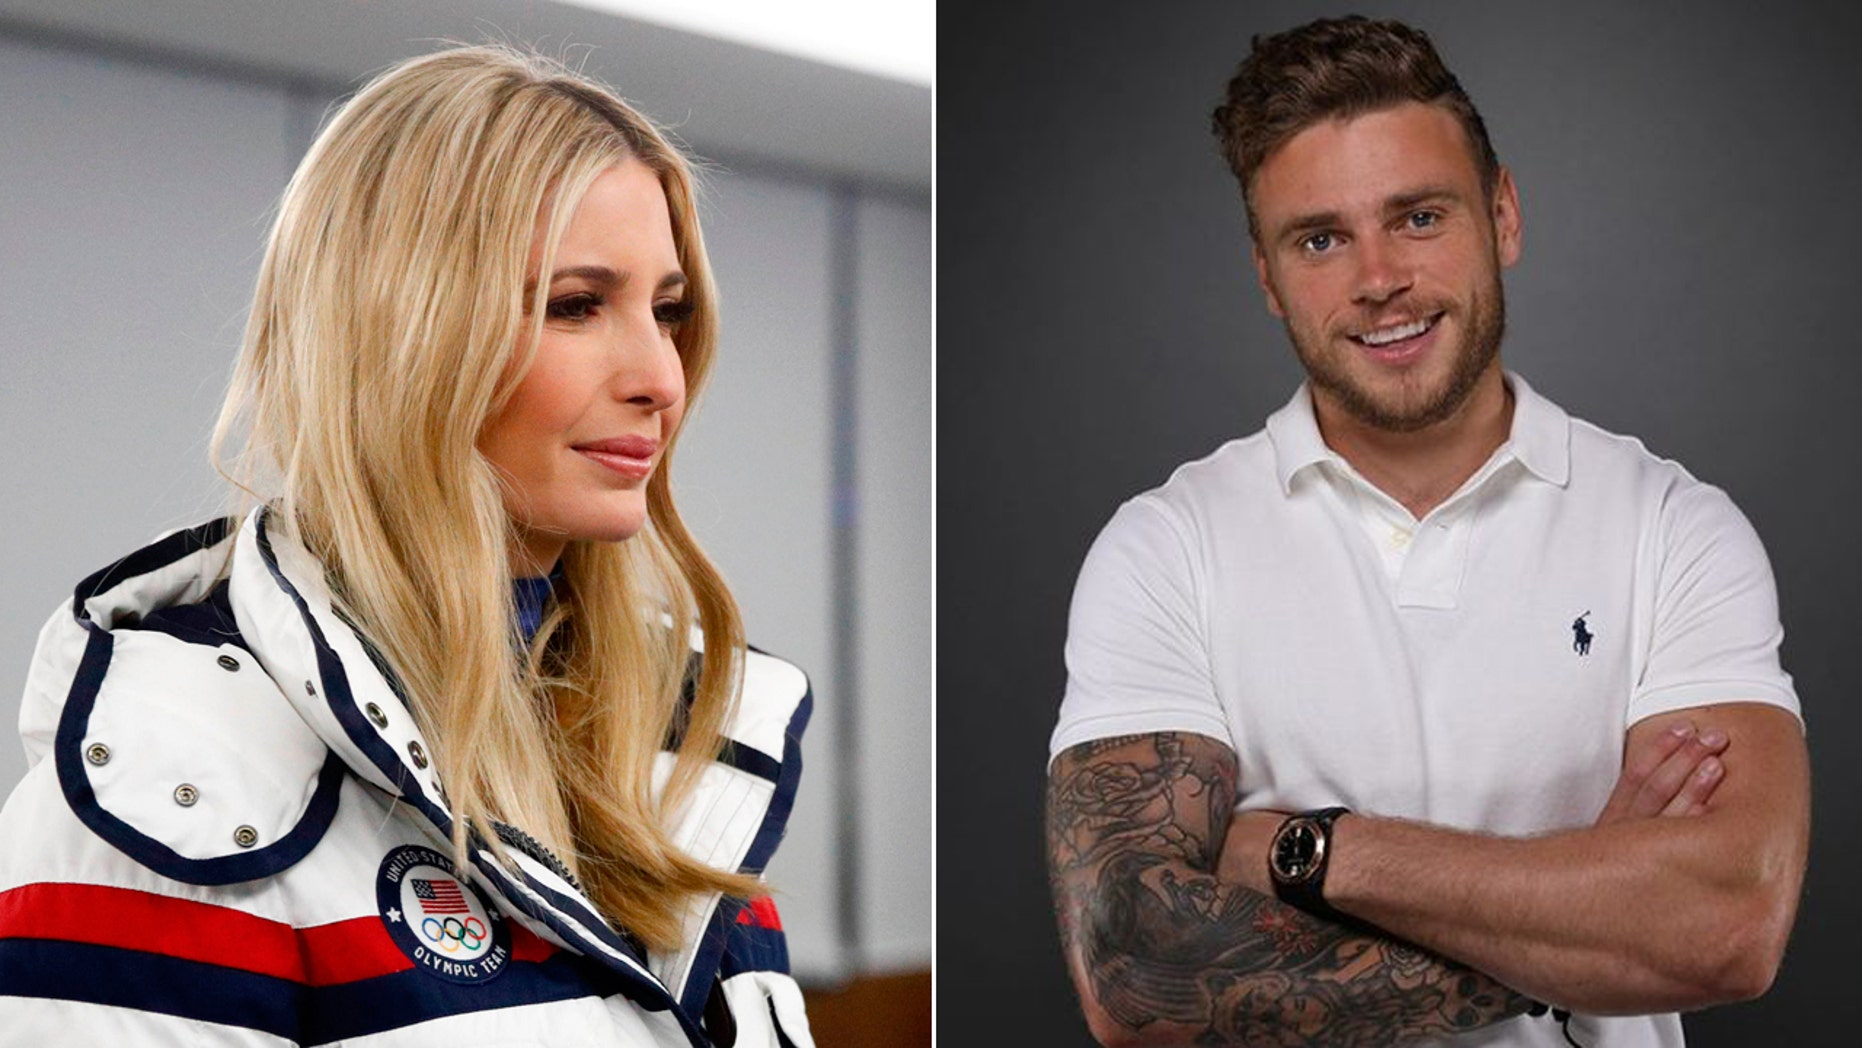 Freestyle skier Gus Kenworthy is being slammed online for a tweet about Ivanka Trump at the closing ceremony.